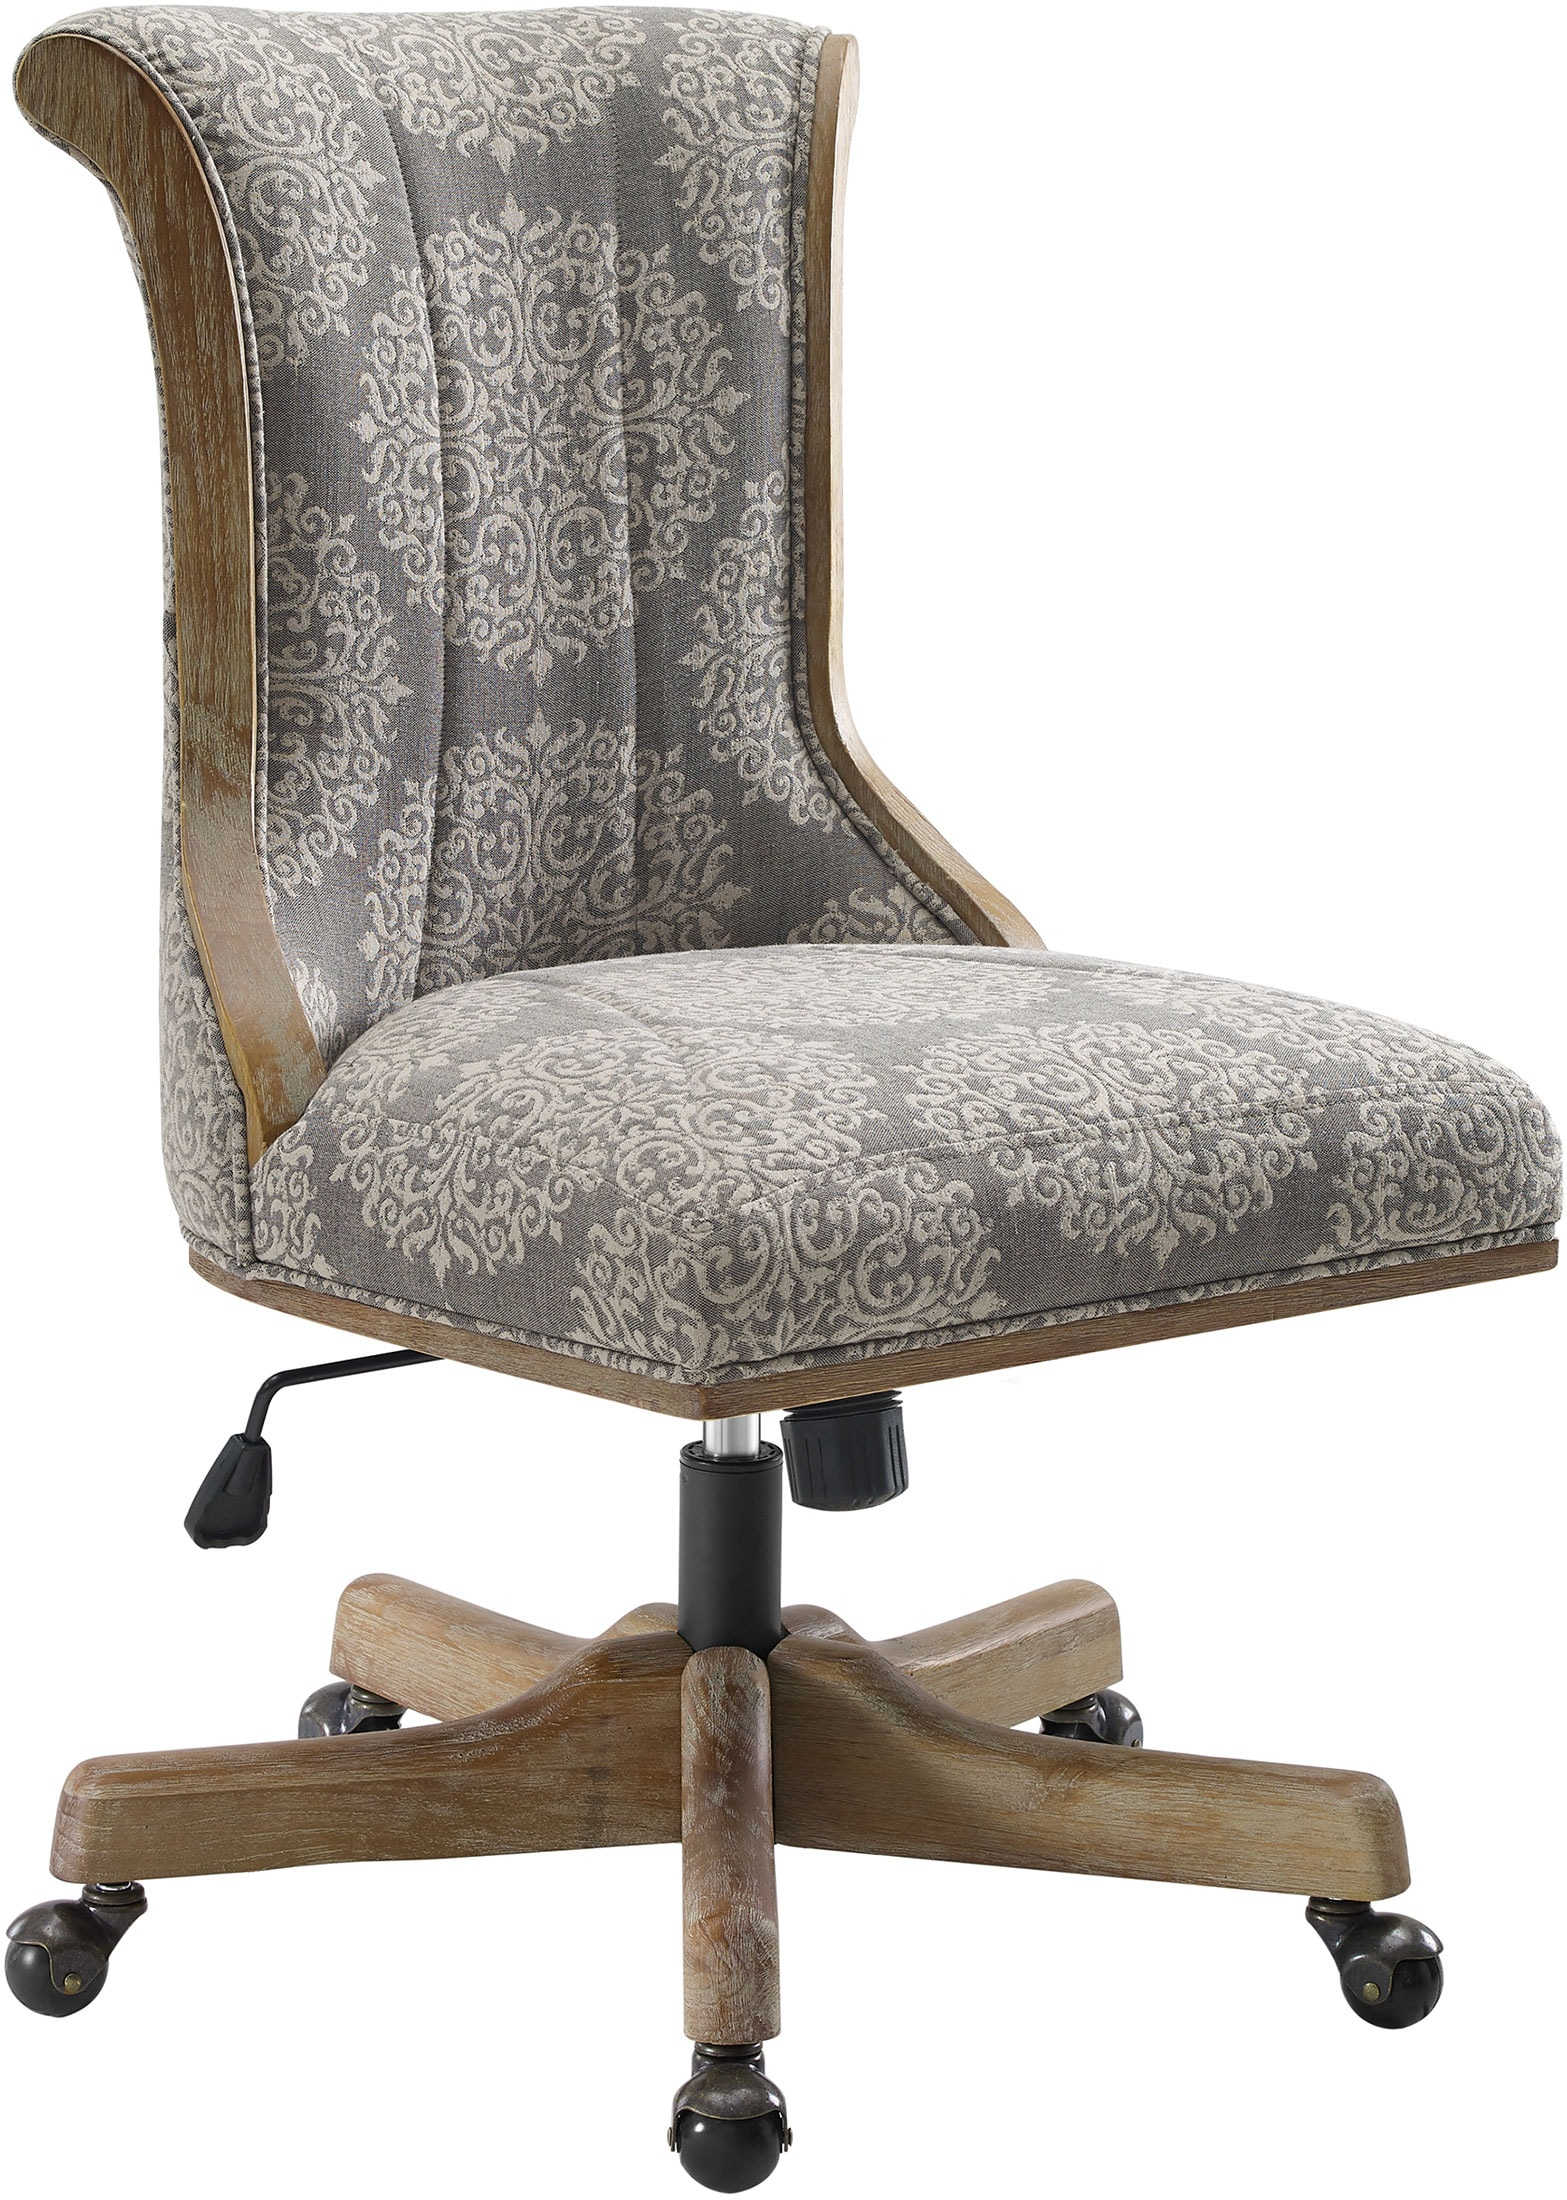 Home Office Furniture - Clarice Office Chair